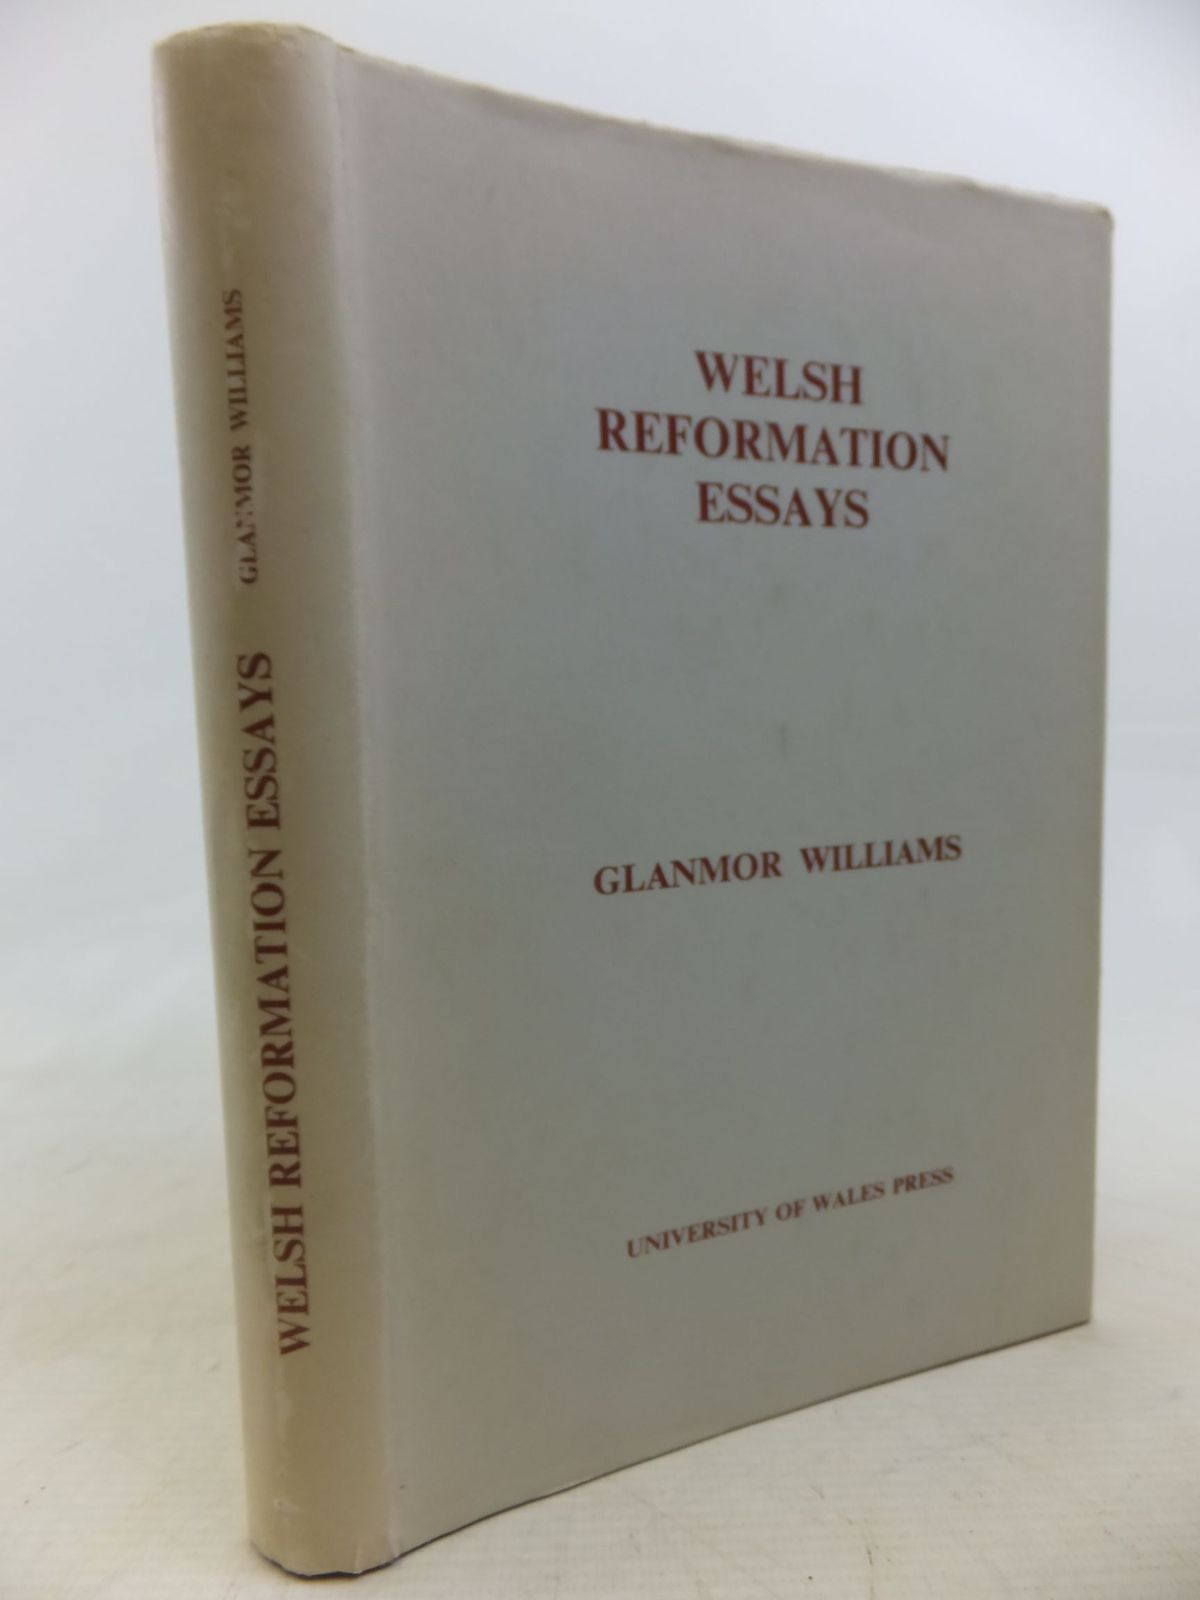 Photo of WELSH REFORMATION ESSAYS written by Williams, Glanmor published by University of Wales (STOCK CODE: 1712816)  for sale by Stella & Rose's Books